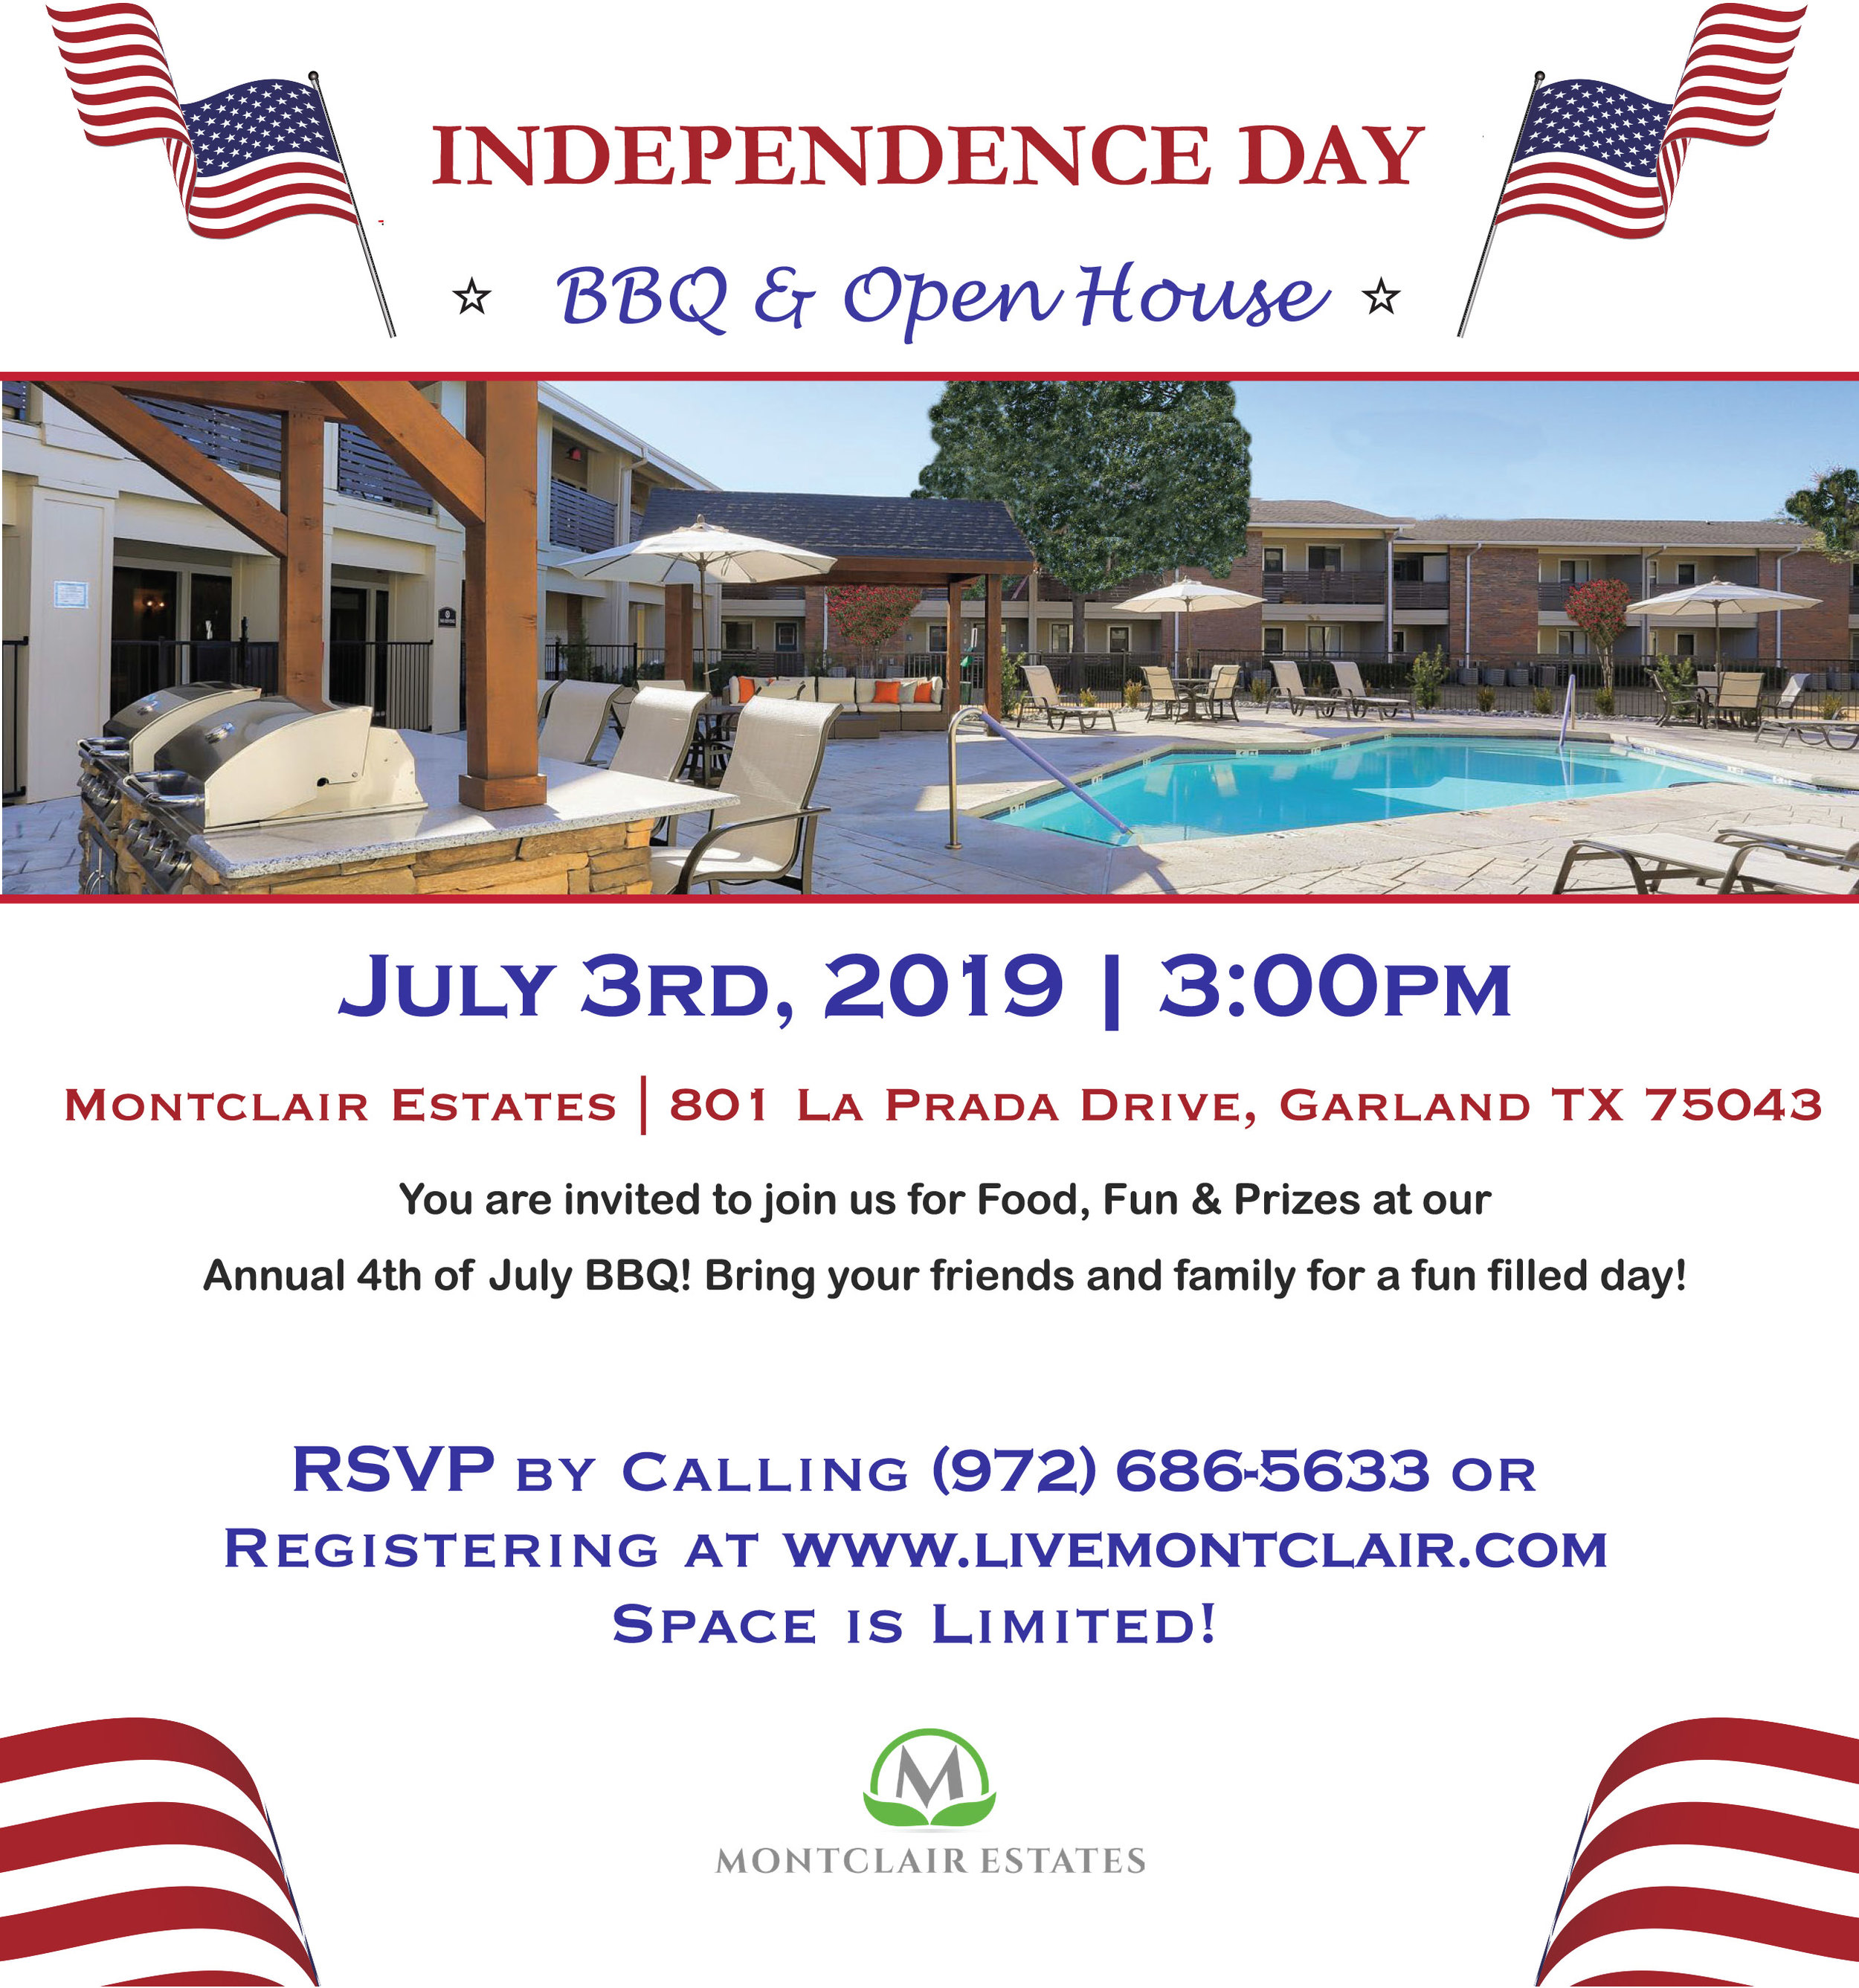 190619 Montclair Estates Independence Day BBQ.jpg